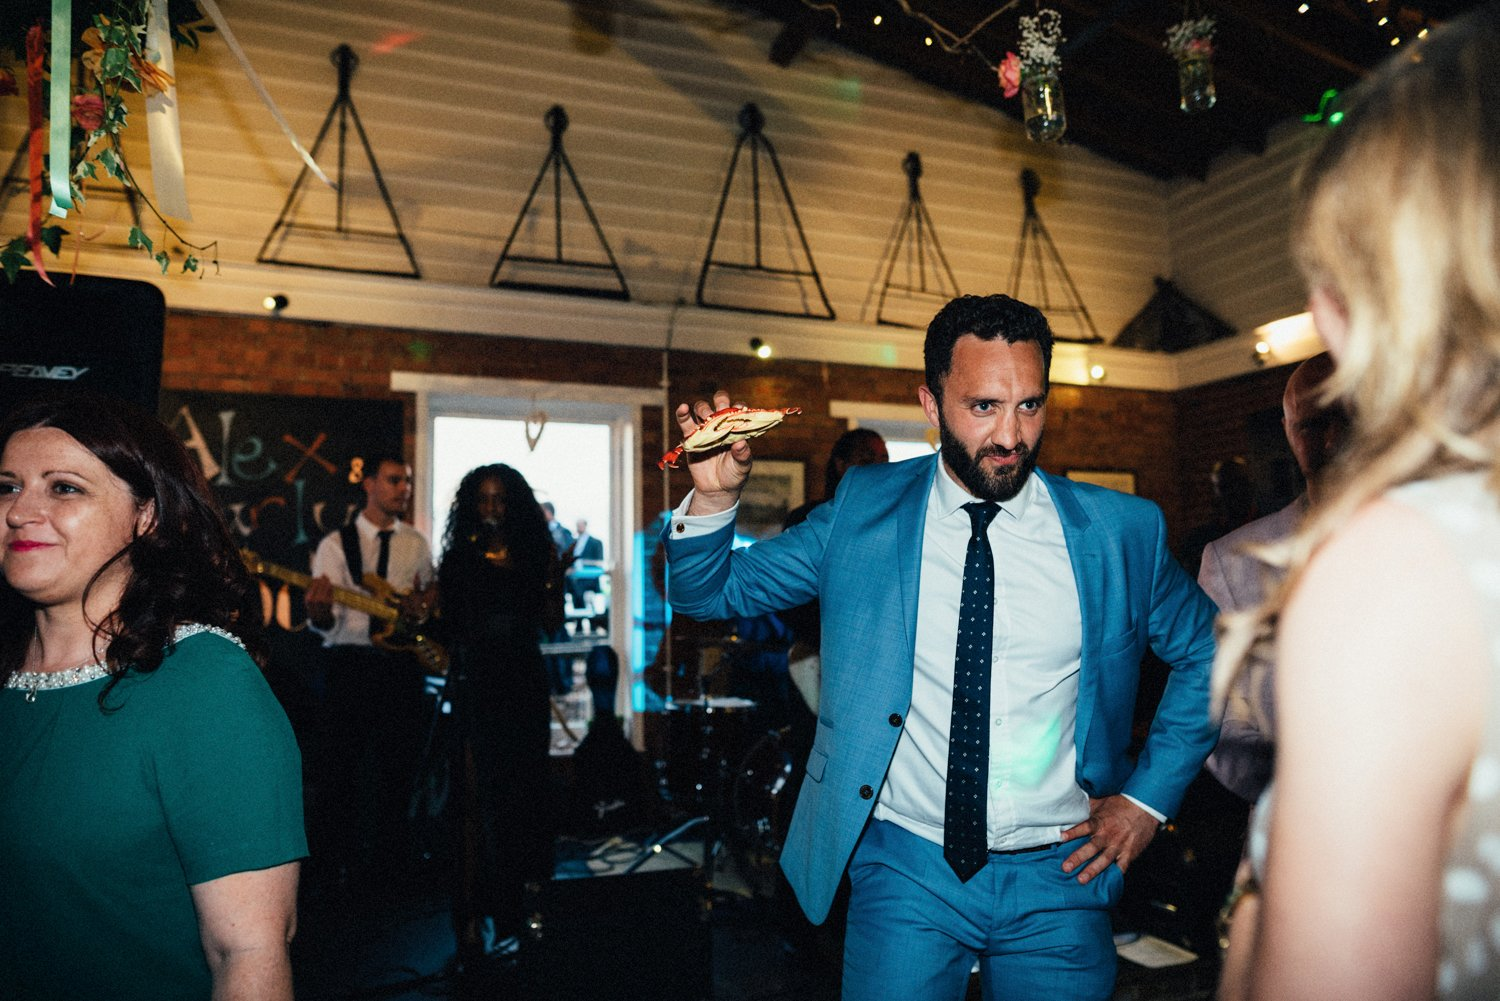 Fun dancing Kent wedding BABB Photo